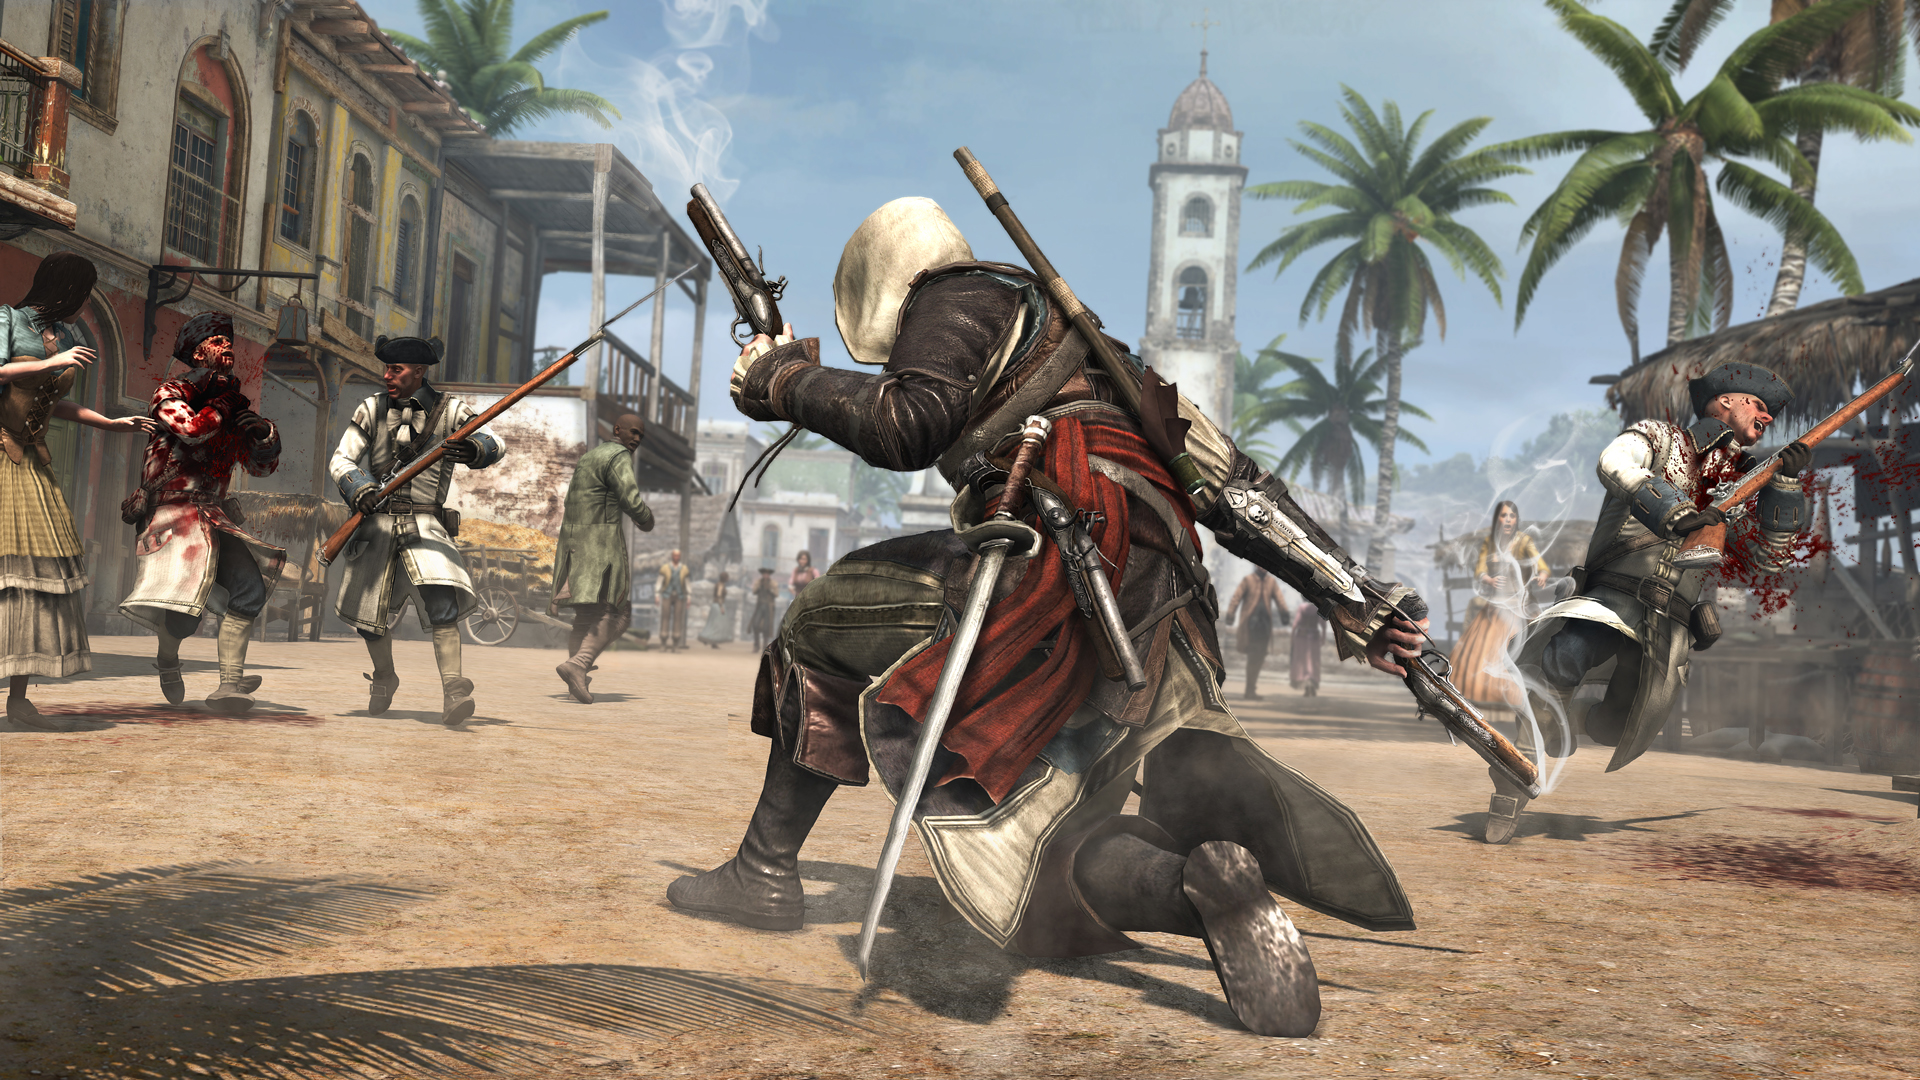 Assassins Creed IV: Black Flag (RUS/ENG/MULTI15) [REPACK]